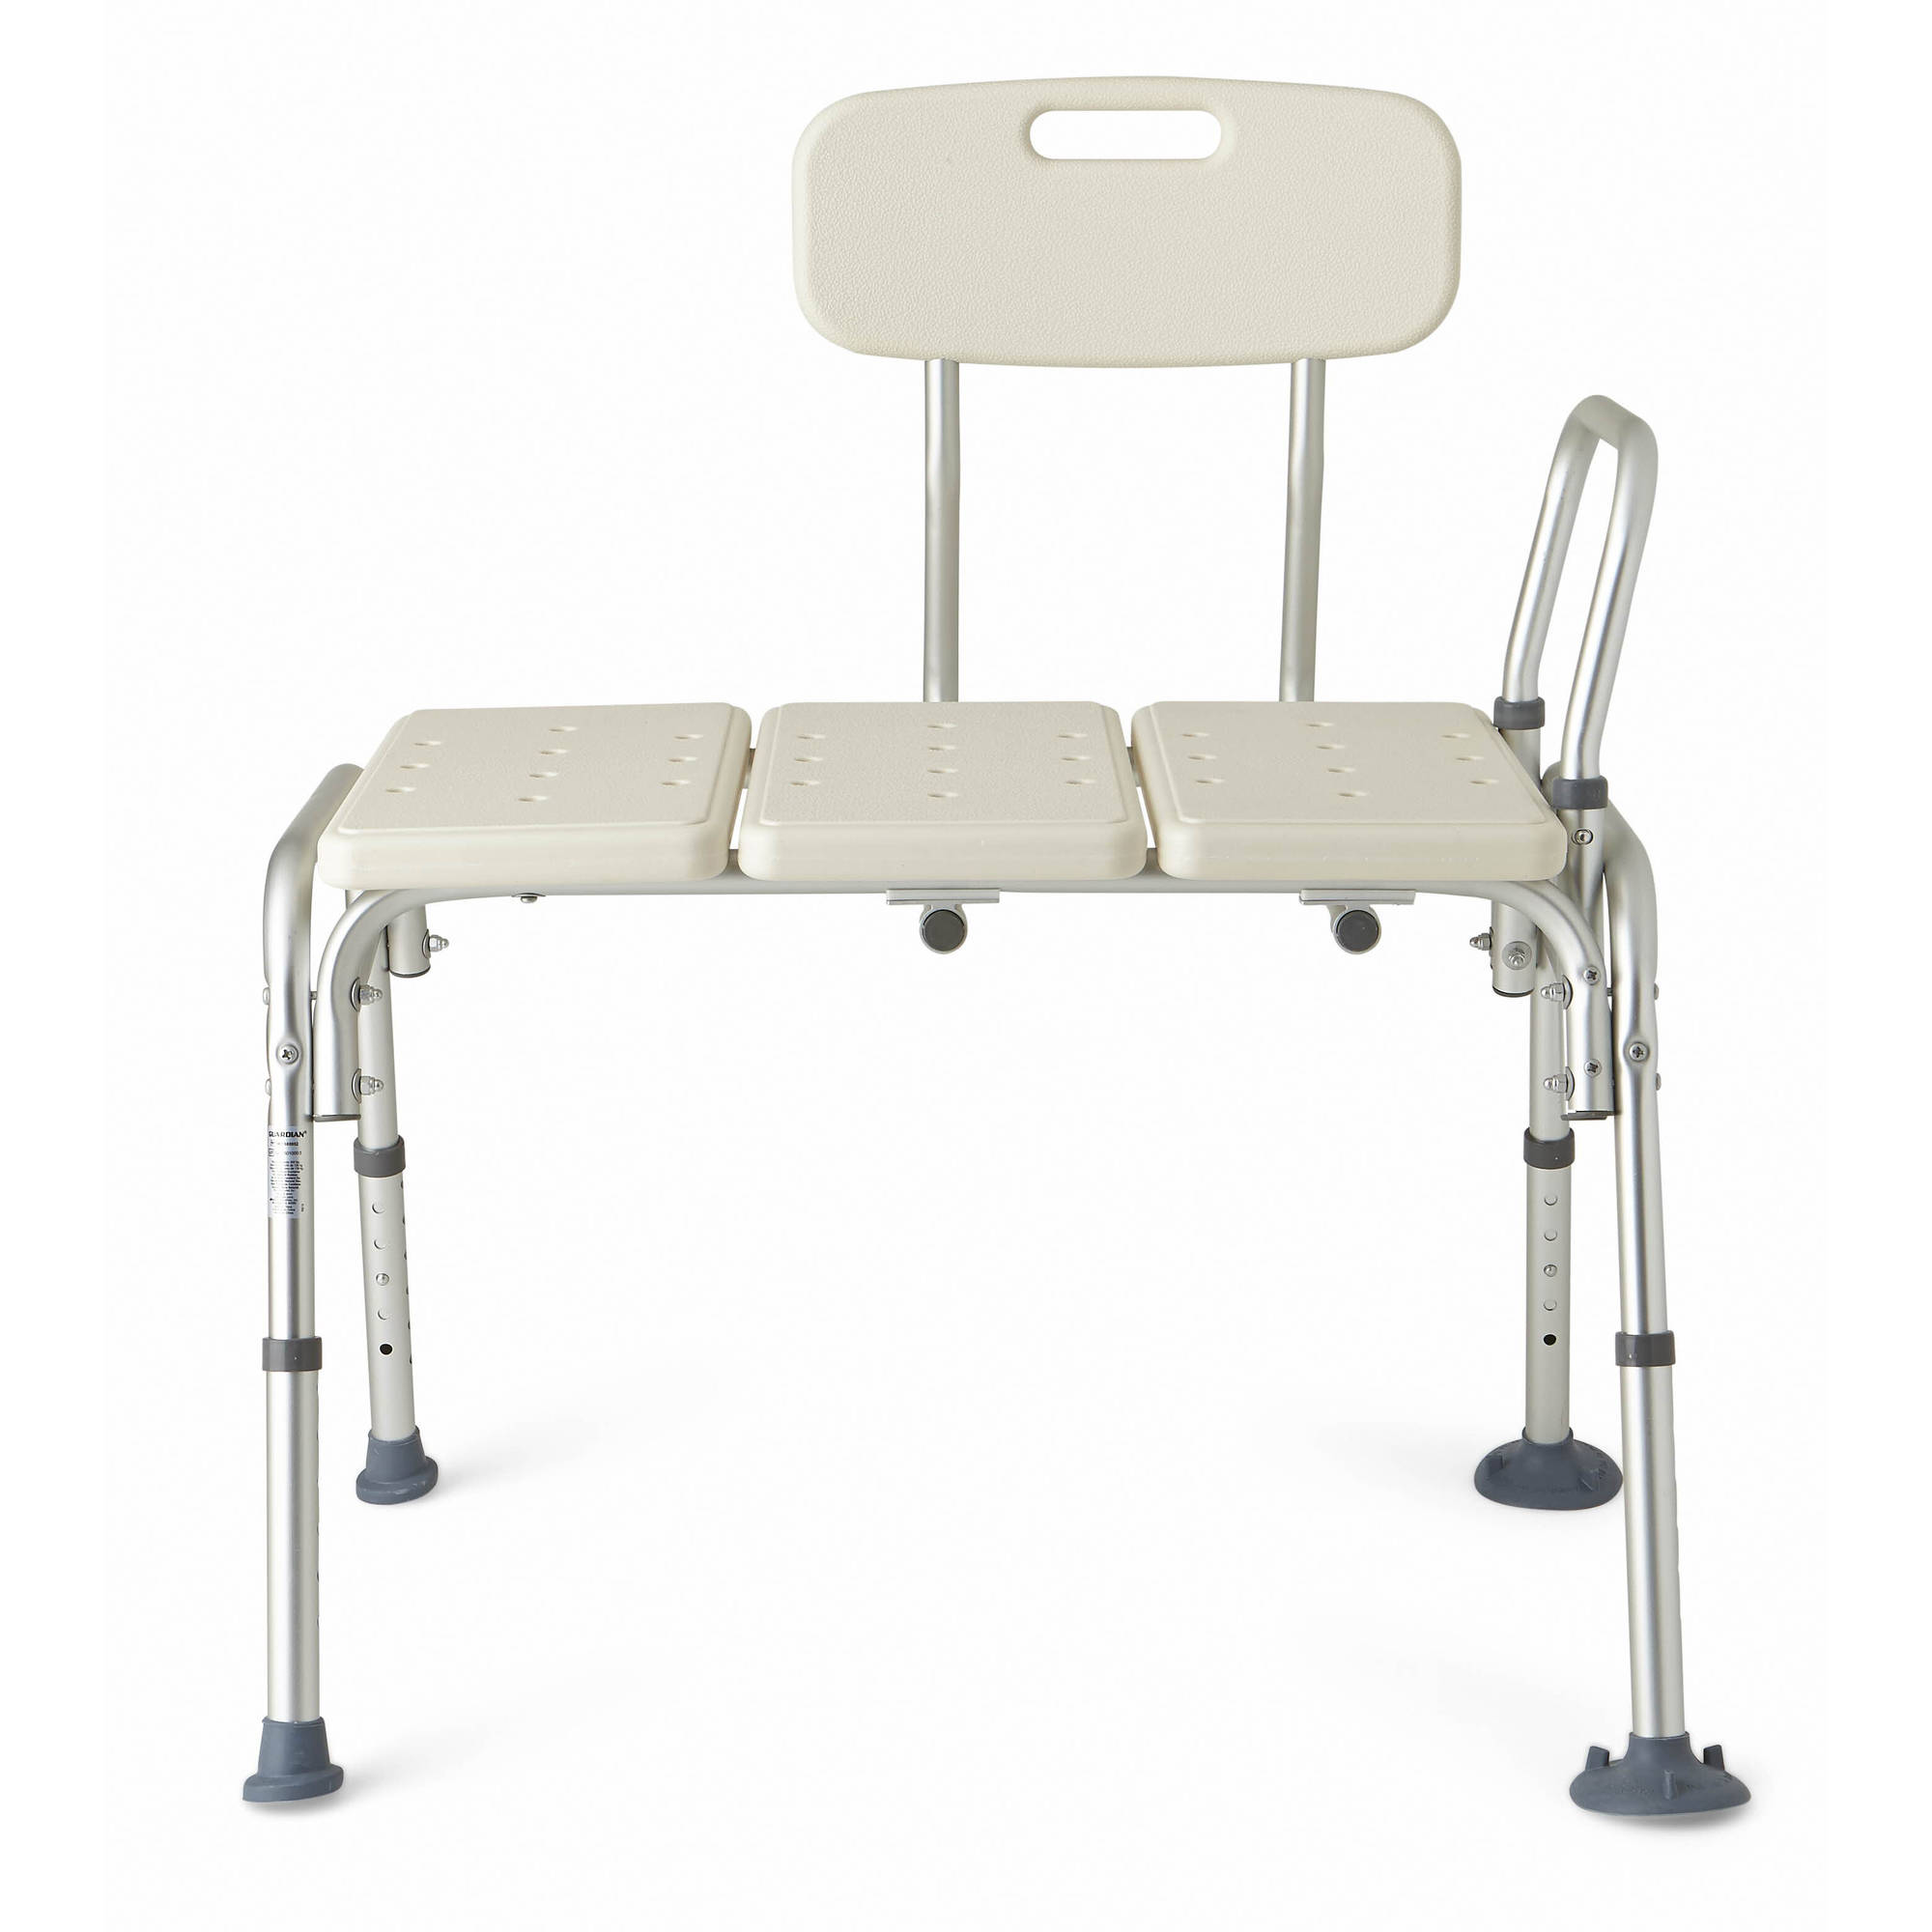 Medical Transfer Bench | Transfer Tub Bench | Bath Tub Transfer Bench